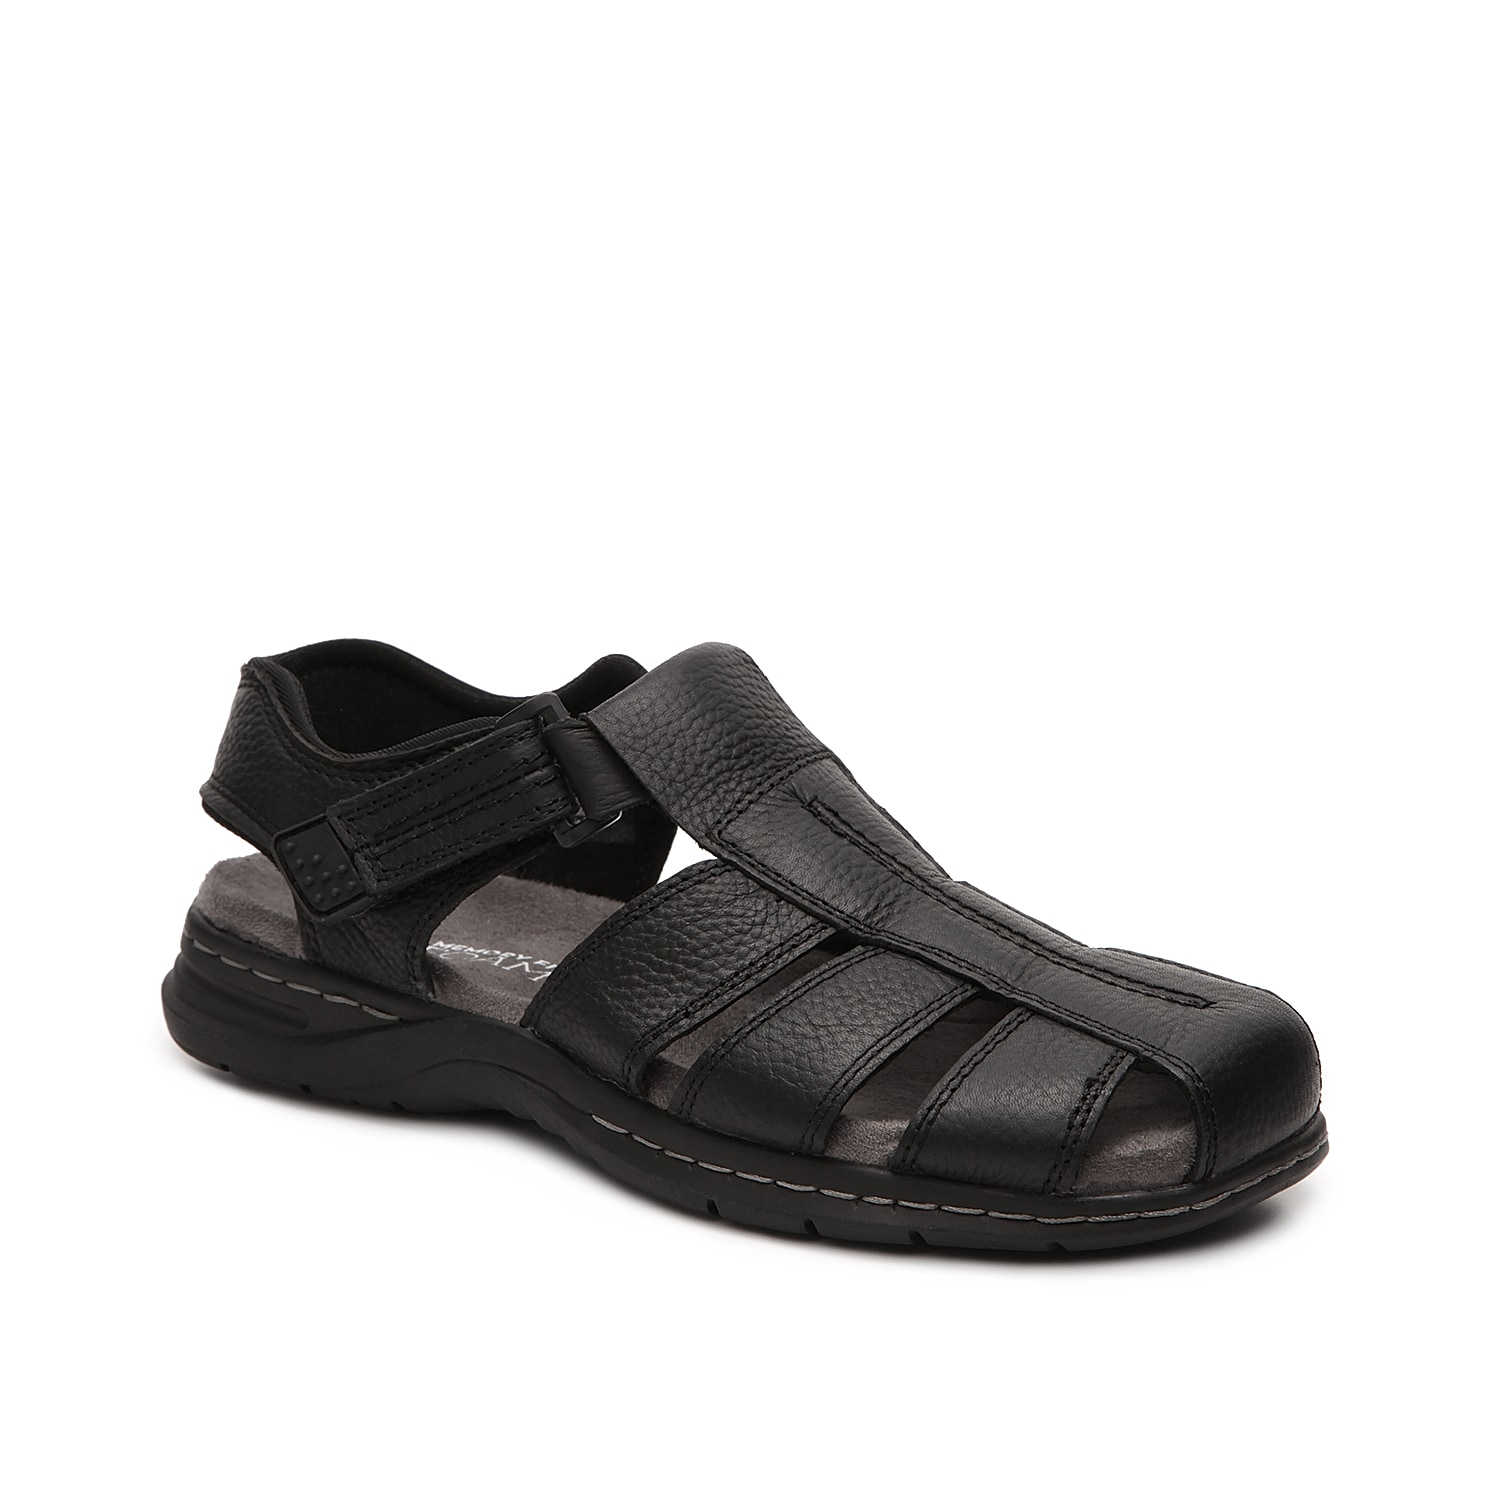 A great sandal for your everyday warm weather wear, the Gaston from Dr. Scholl\\\'s will keep your feet comfortable and well ventilated! Slip on these leather fisherman sandals to experience the Memory Fit® foam footbed and flexibility they have to offer.